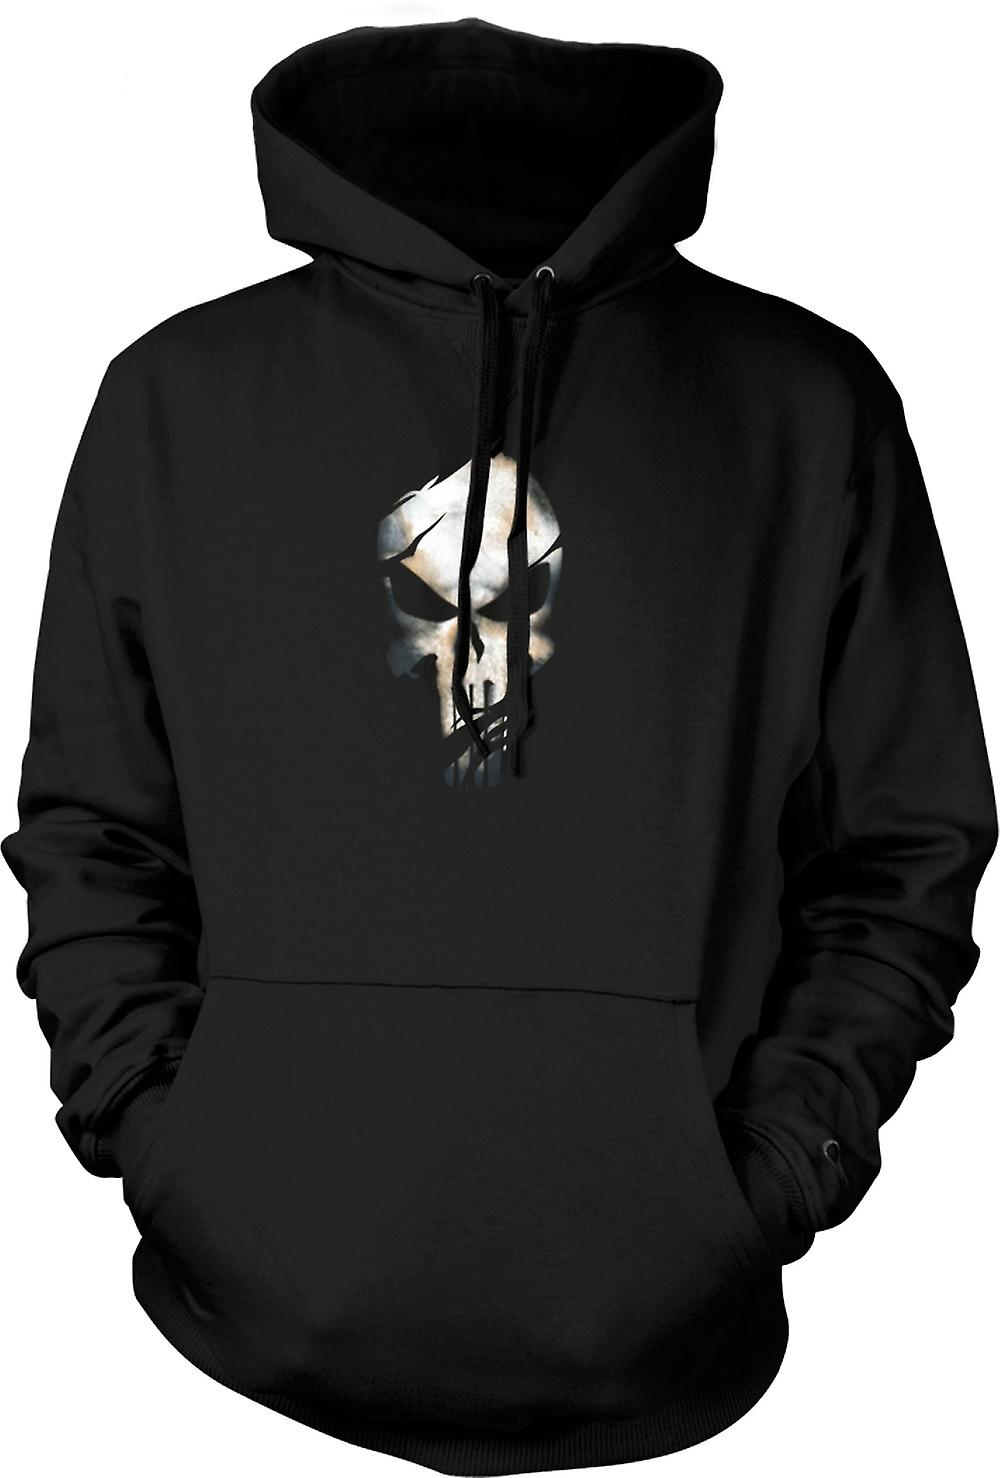 Kids Hoodie - The Punisher - Ripped Effect